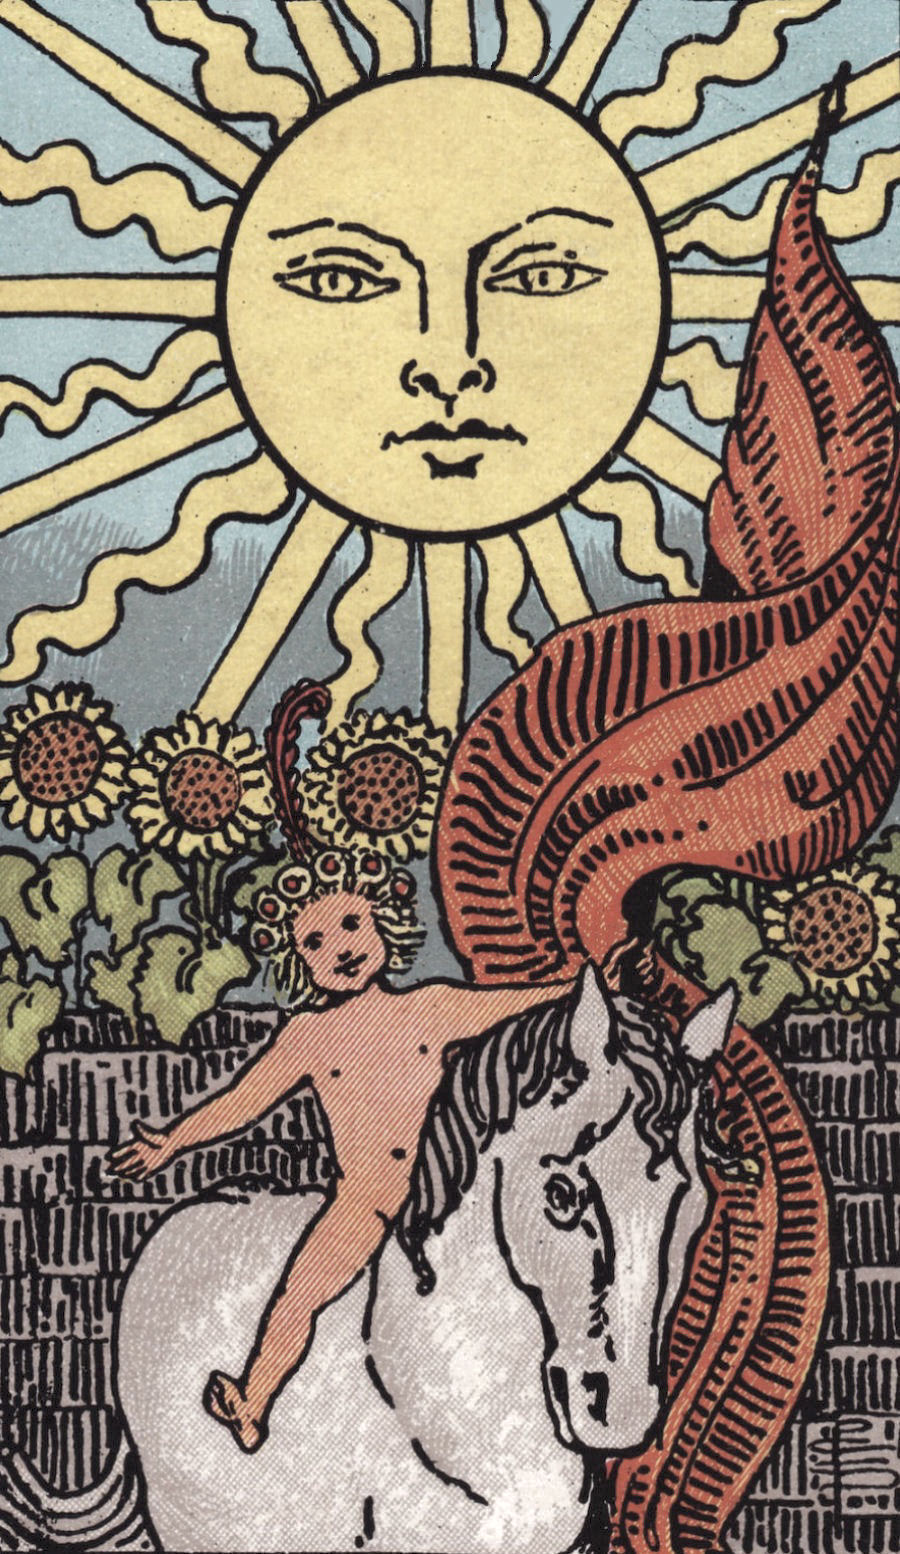 The Sun - This card can represent the unbridled orgasmic joy of sex. Vulnerability, when expressed in a safe relationship or relationships, allows us to show up as purely ourselves. When we do this sexually, the energetic channel is astounding and something to be savored (hopefully many, many times!)